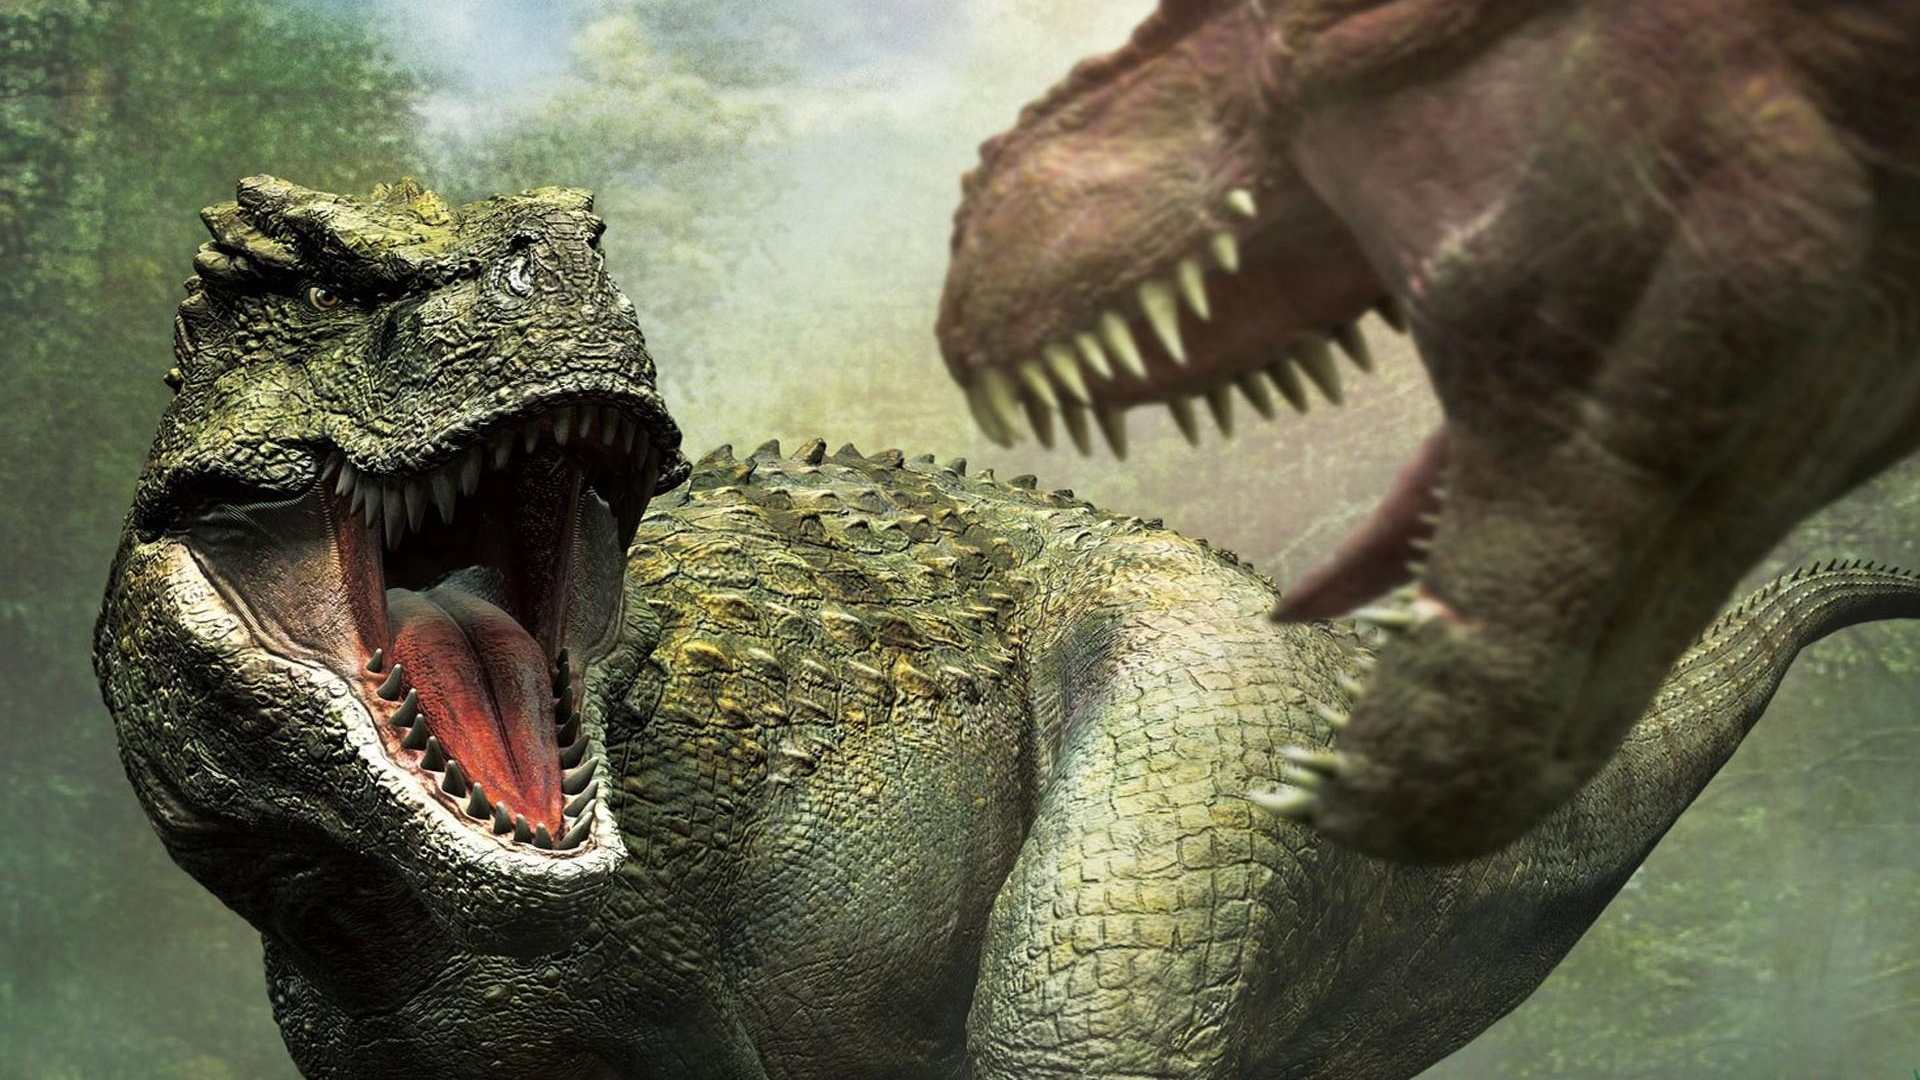 dinosaurs-mouth-fangs-aggression-1920x1080